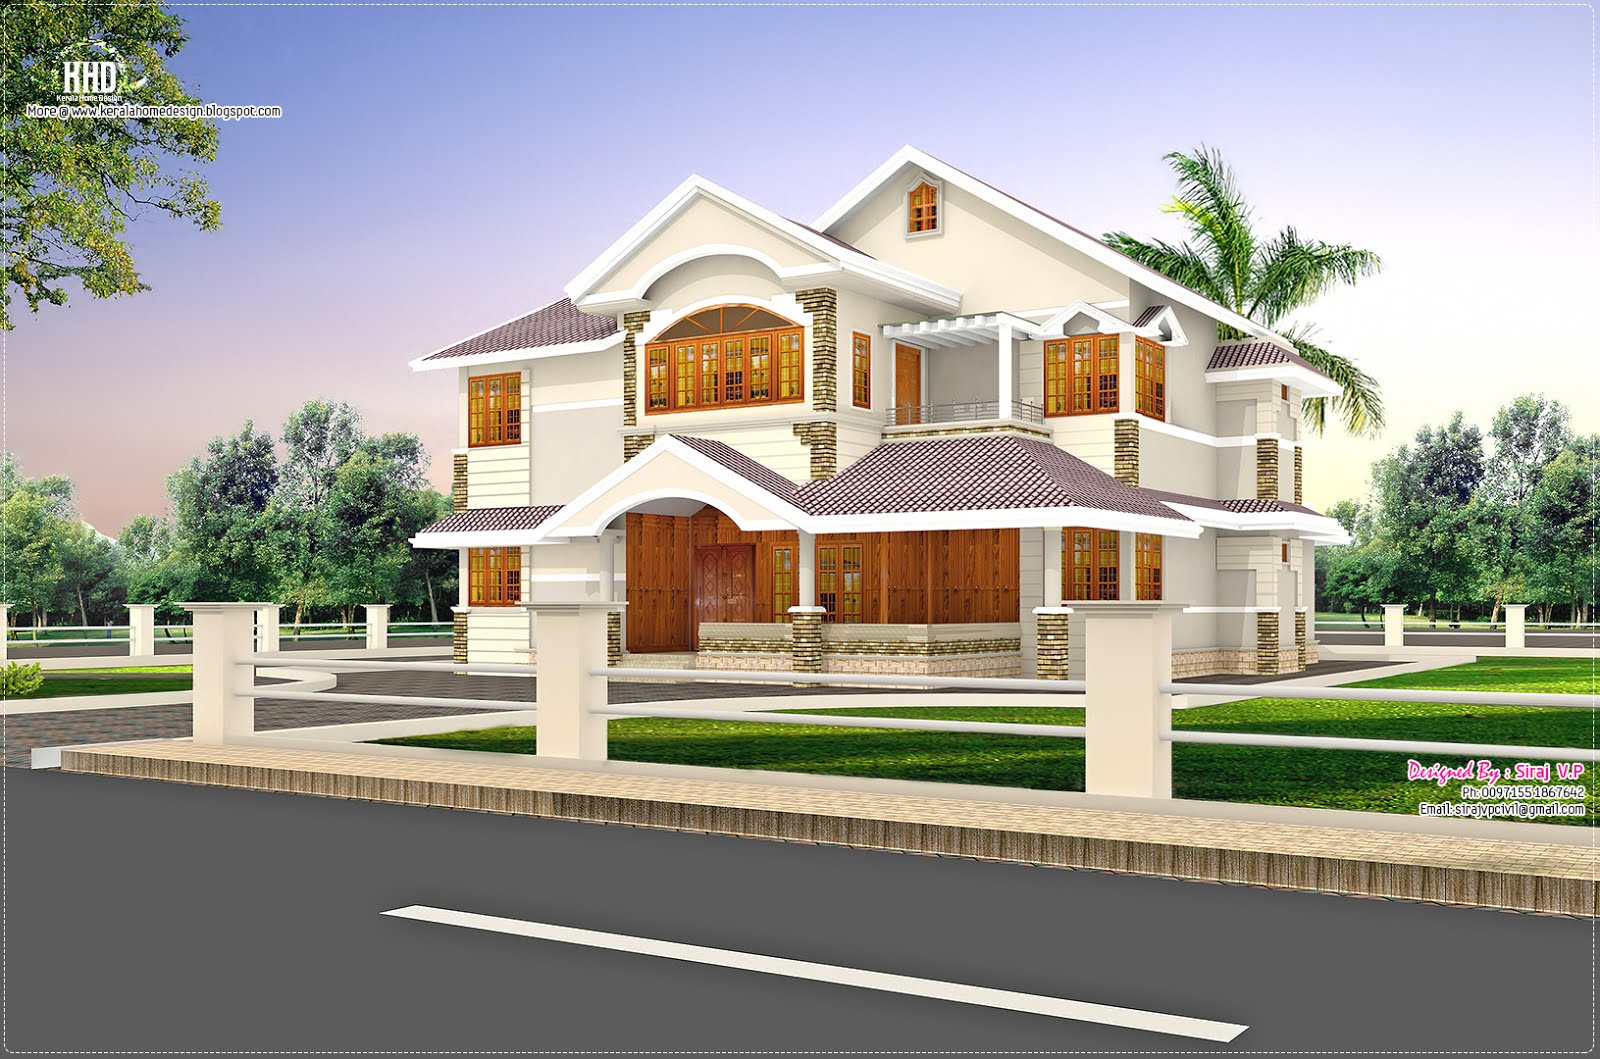 Home design 3d for 3d home